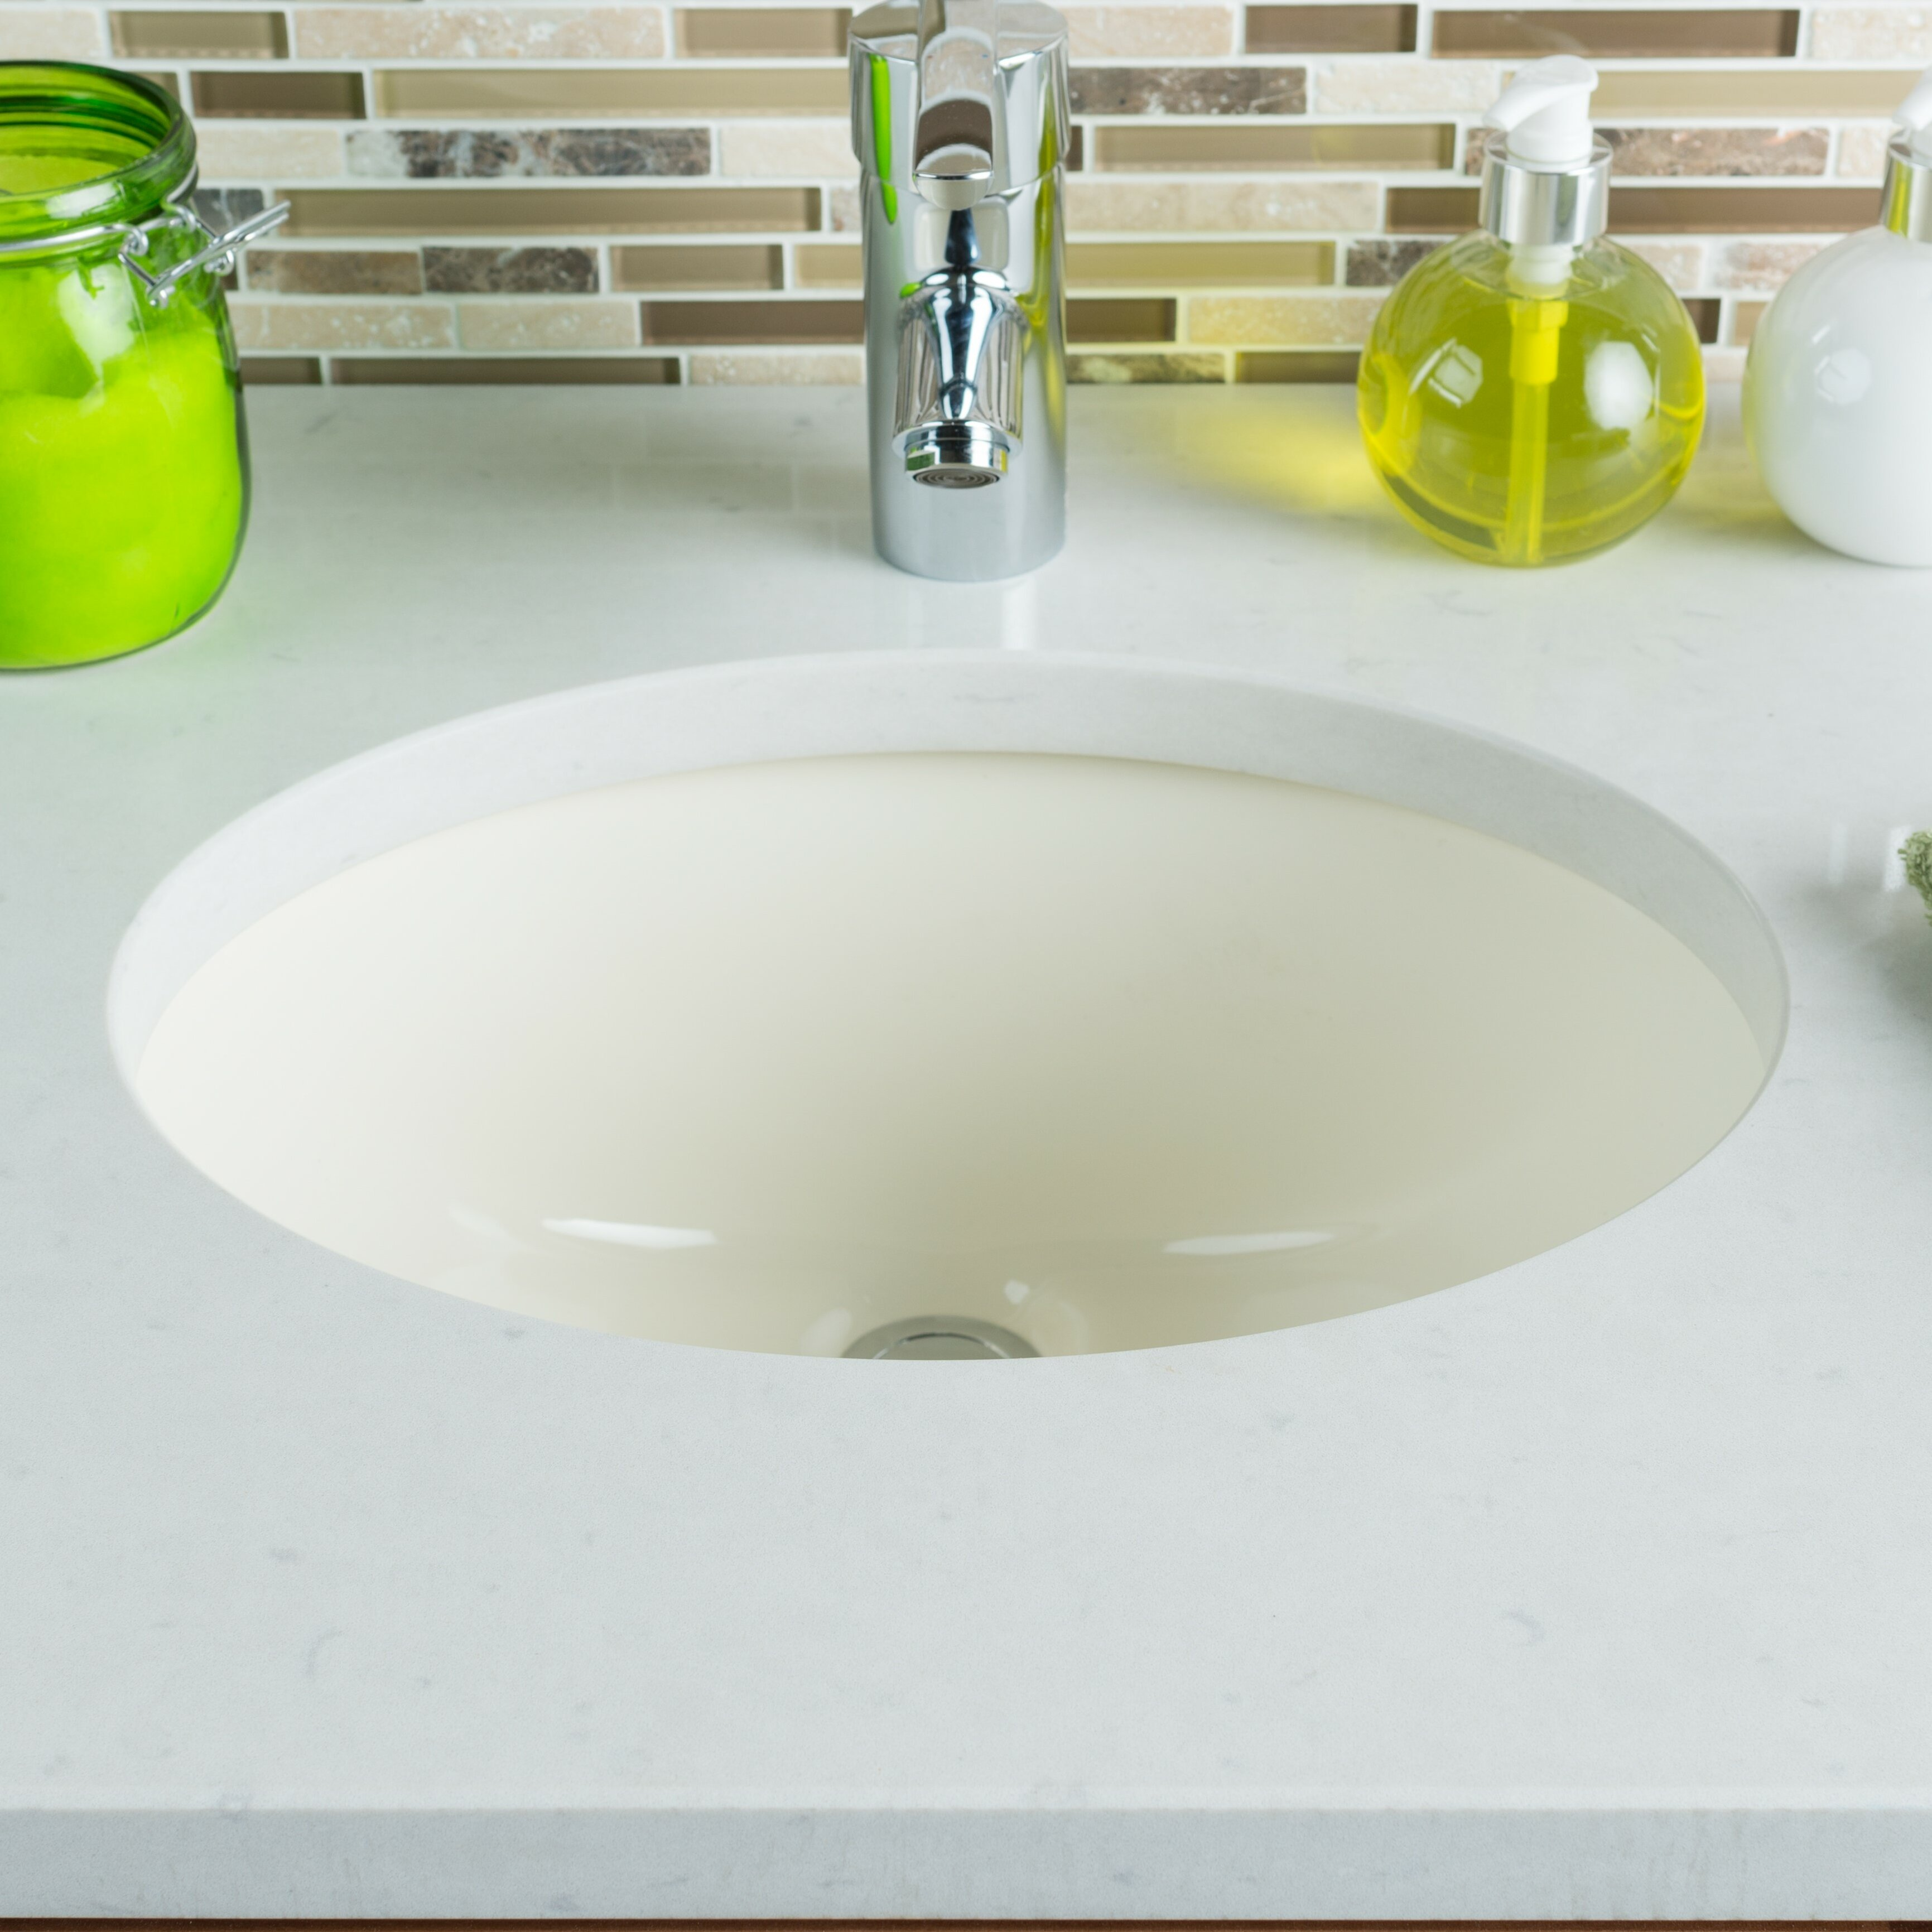 Bathroom Sink Material Hahn Ceramic Bowl Oval Undermount Bathroom Sink With Overflow